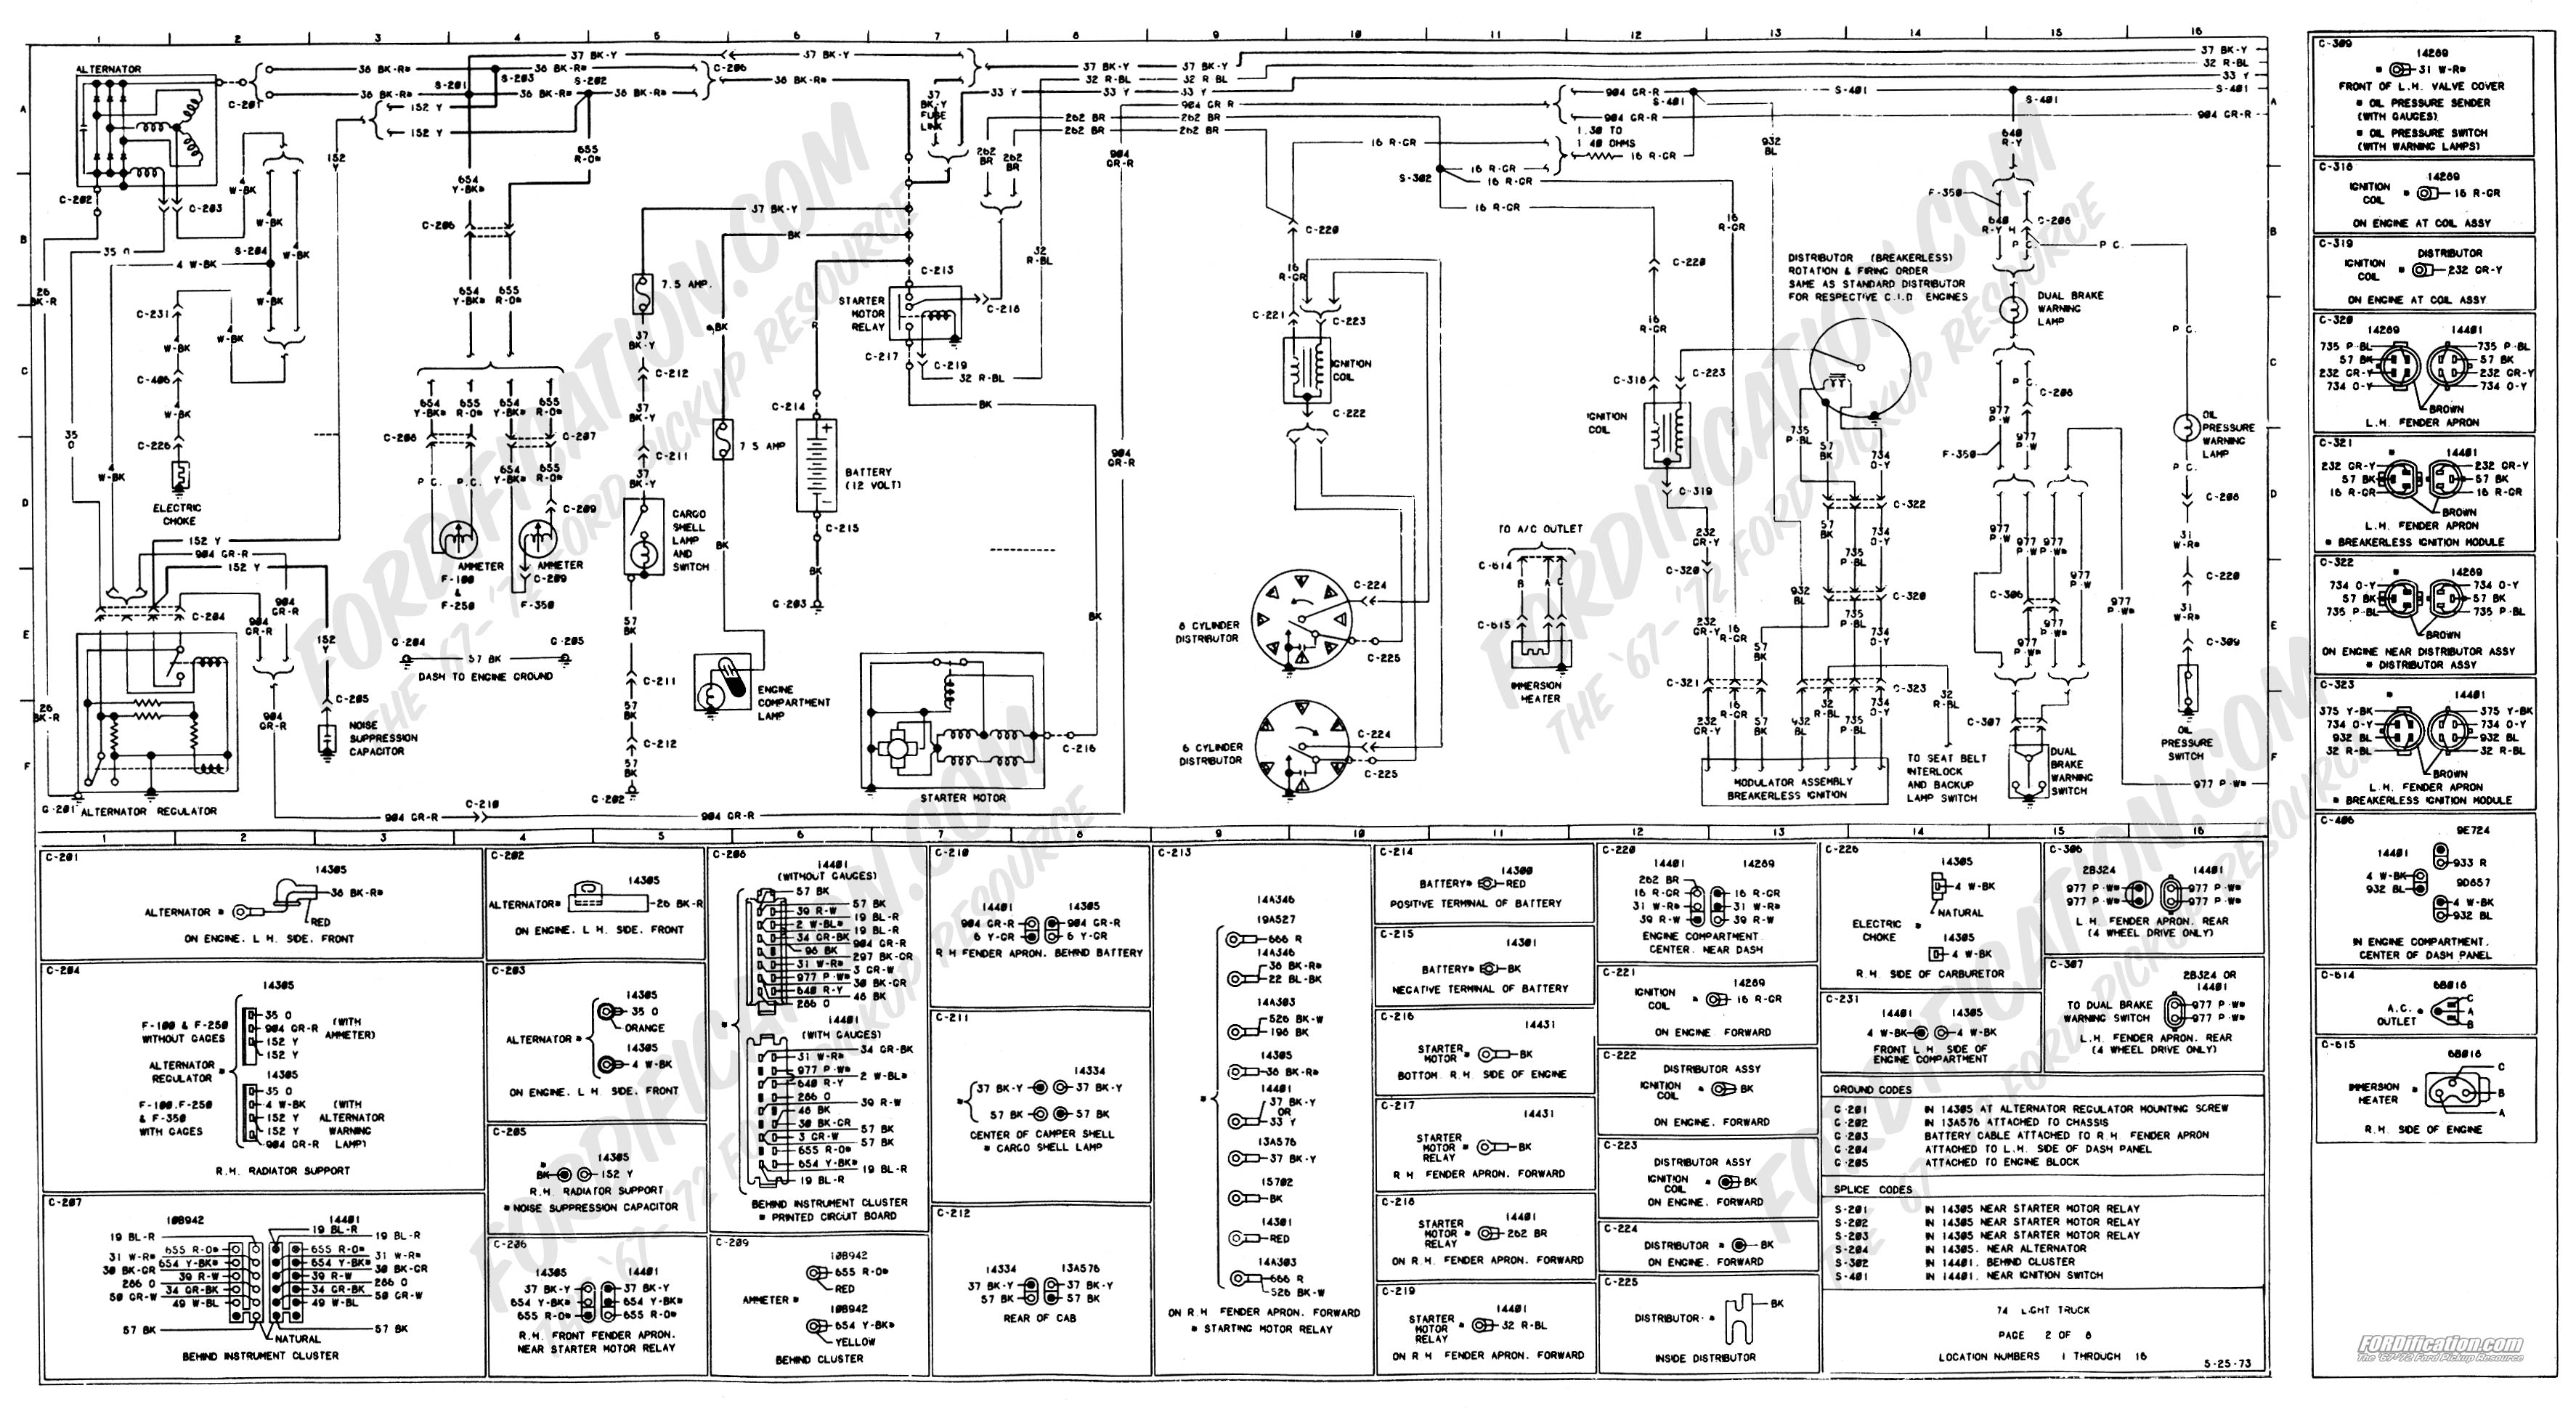 Wiring Diagram For 79 Ford Truck Simple Wiring Diagram 12 Volt Voltage  Regulator Diagram 1979 Ford Truck Voltage Regulator Wiring Diagram